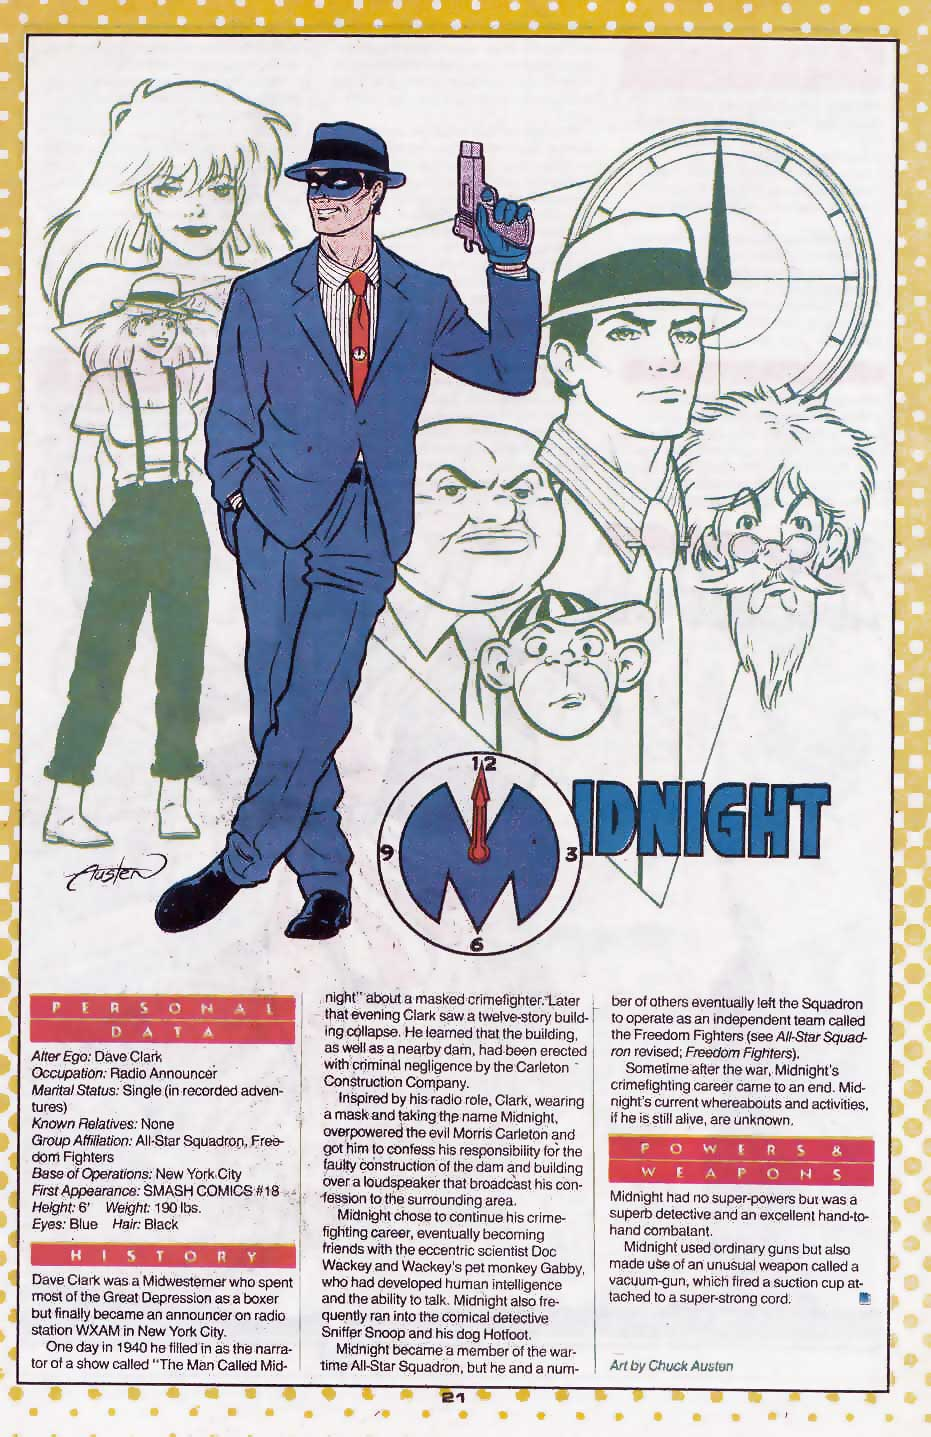 Who's Who Update 88 #2 Midnight by Chuck Austen